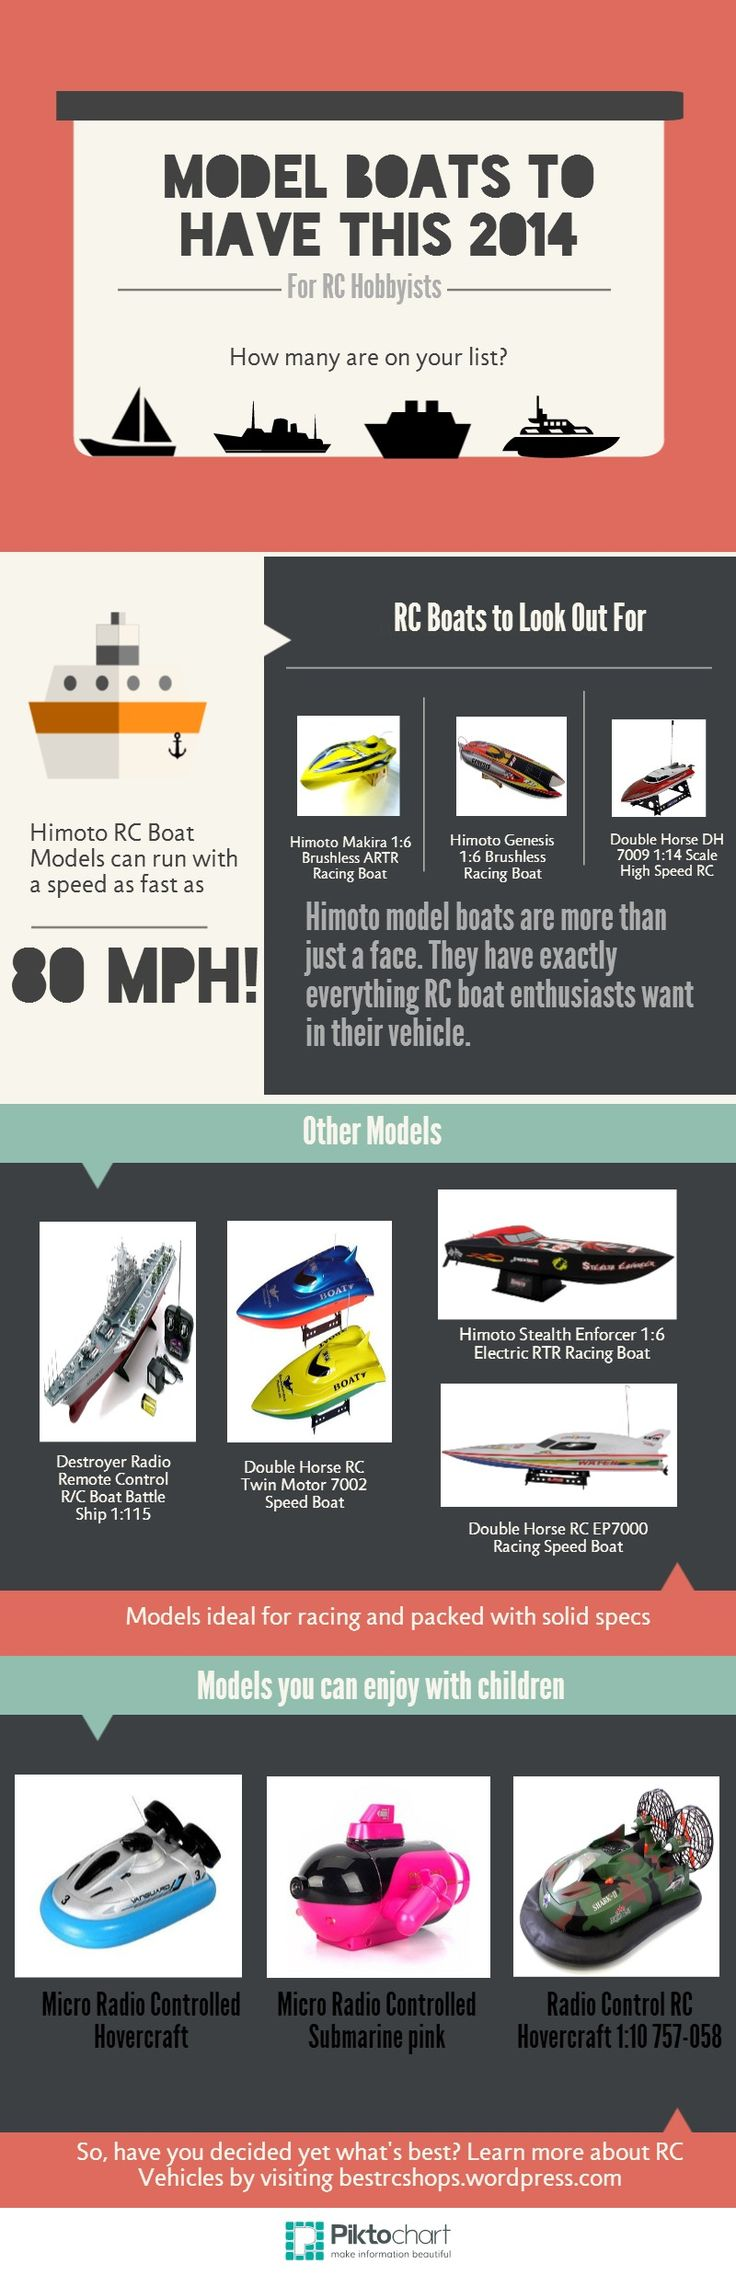 Catch the coolest remote control boats by Himoto. Check them out before the year ends!